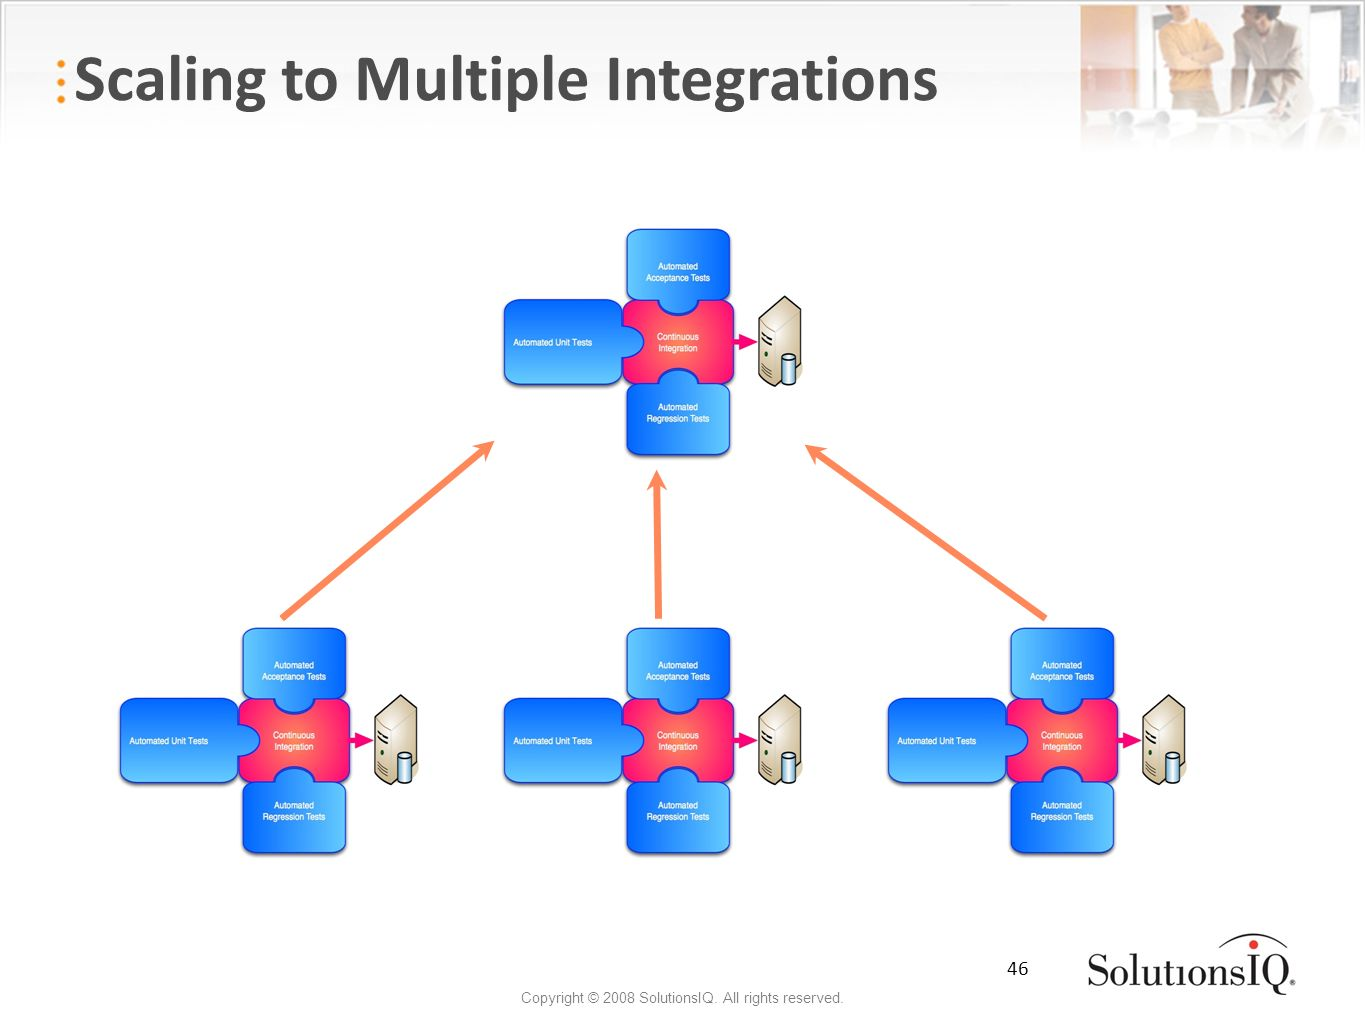 46 Copyright © 2008 SolutionsIQ. All rights reserved. Scaling to Multiple Integrations